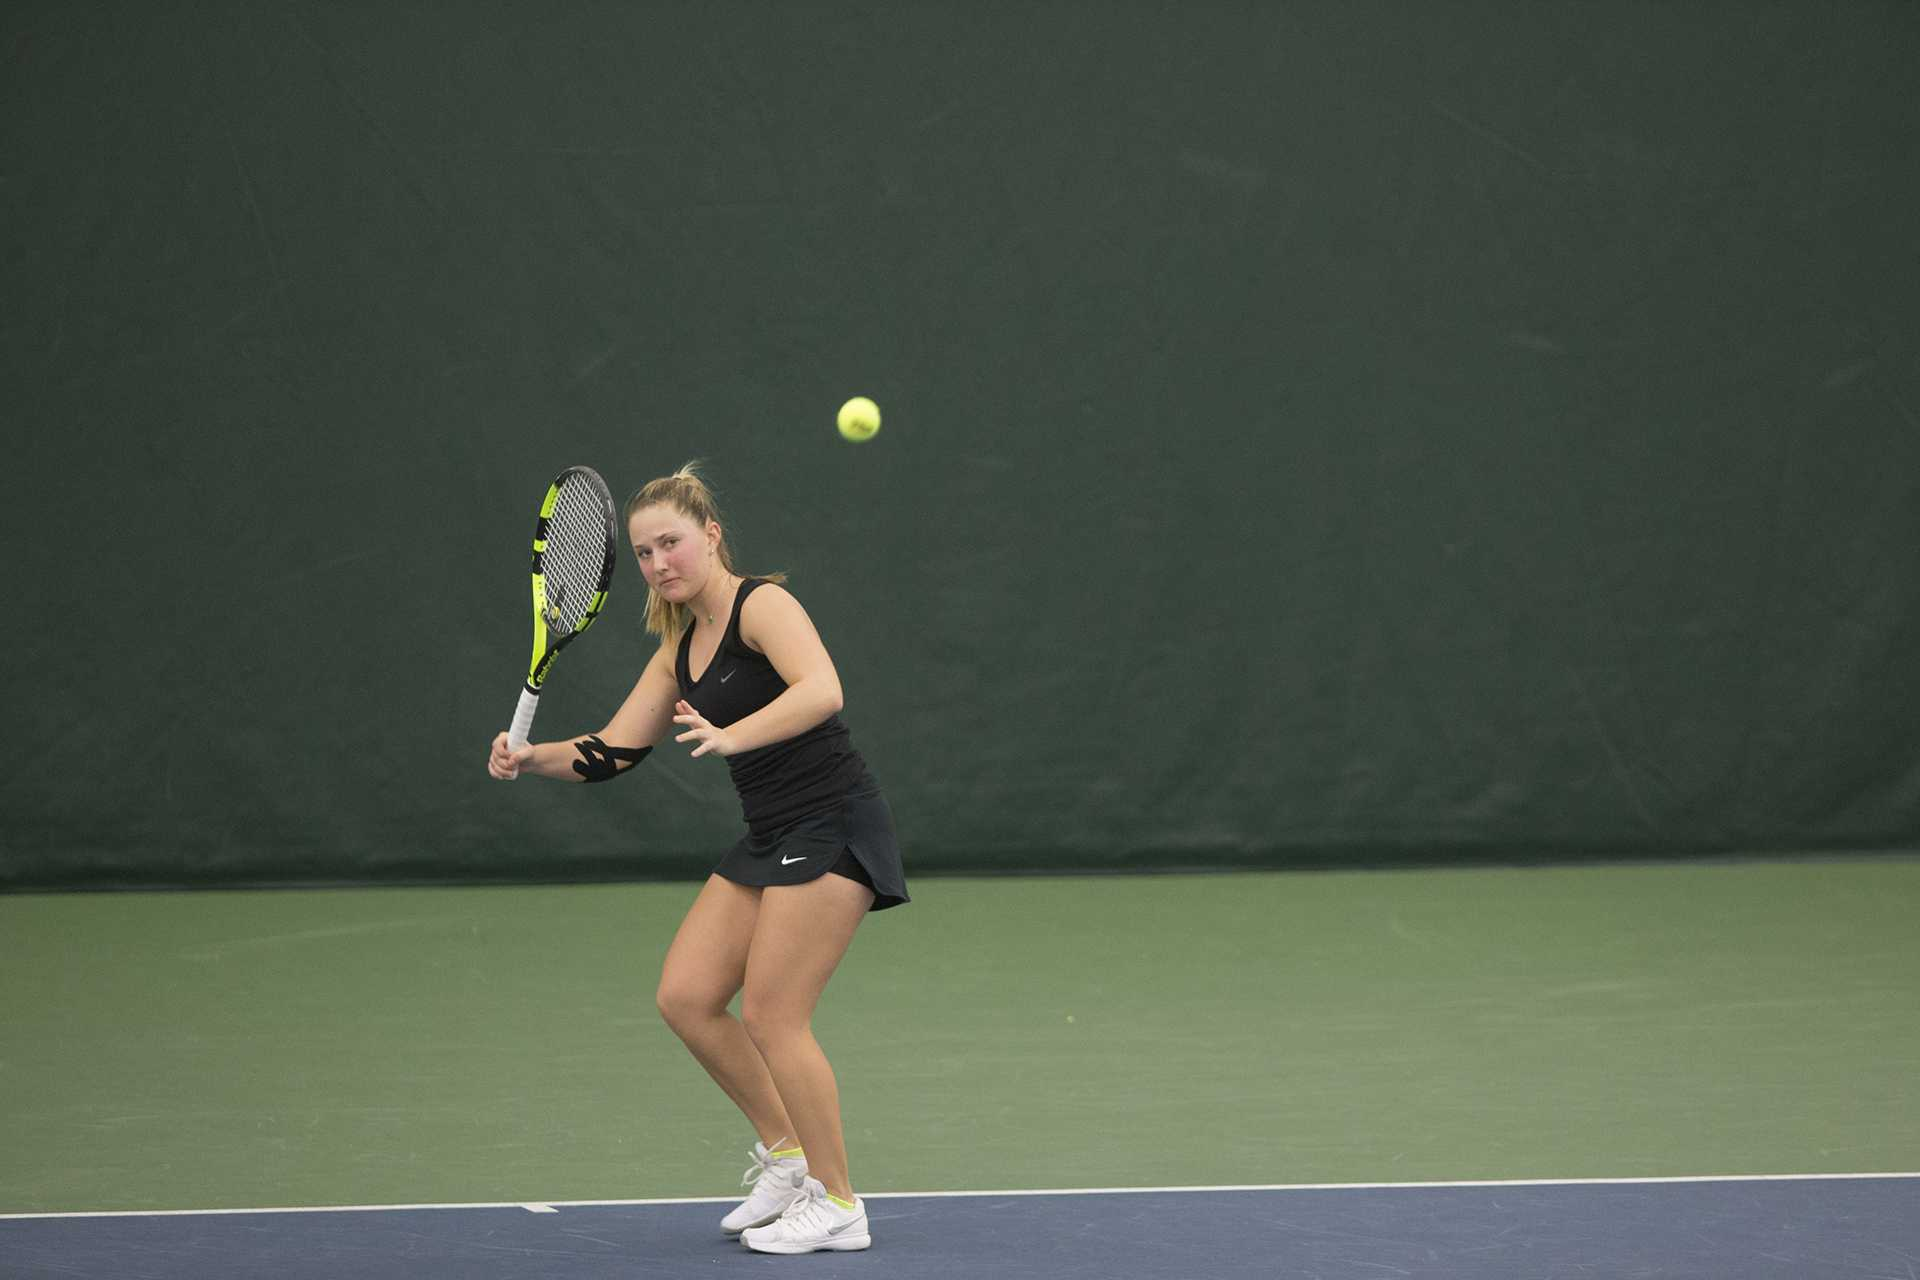 Iowa's Danielle Burich readies a forehand during a tennis match between Iowa and Northern Iowa in Iowa City on Saturday, Jan. 20, 2018. The Hawkeyes defeated the Panthers, 7-0. (Shivansh Ahuja/The Daily Iowan)